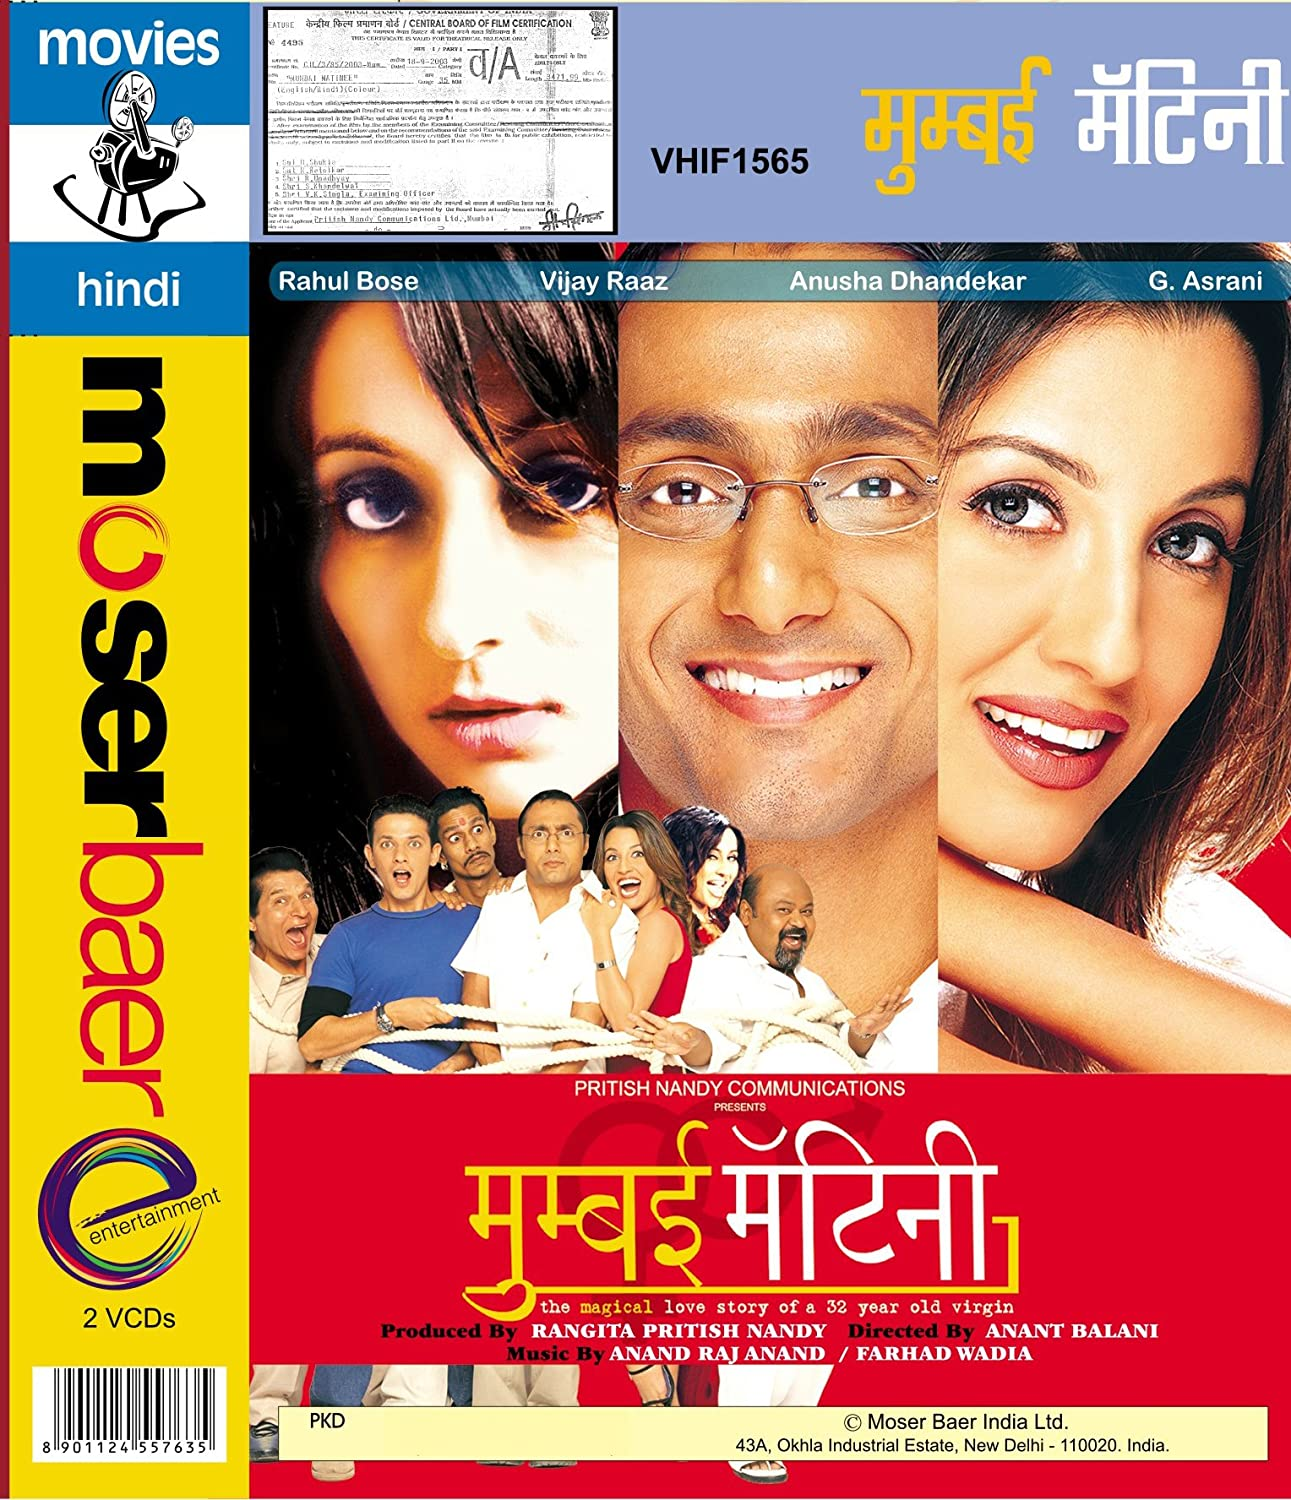 Amazon Buy Mumbai Matinee Dvd Blu Ray Online At Best Prices In